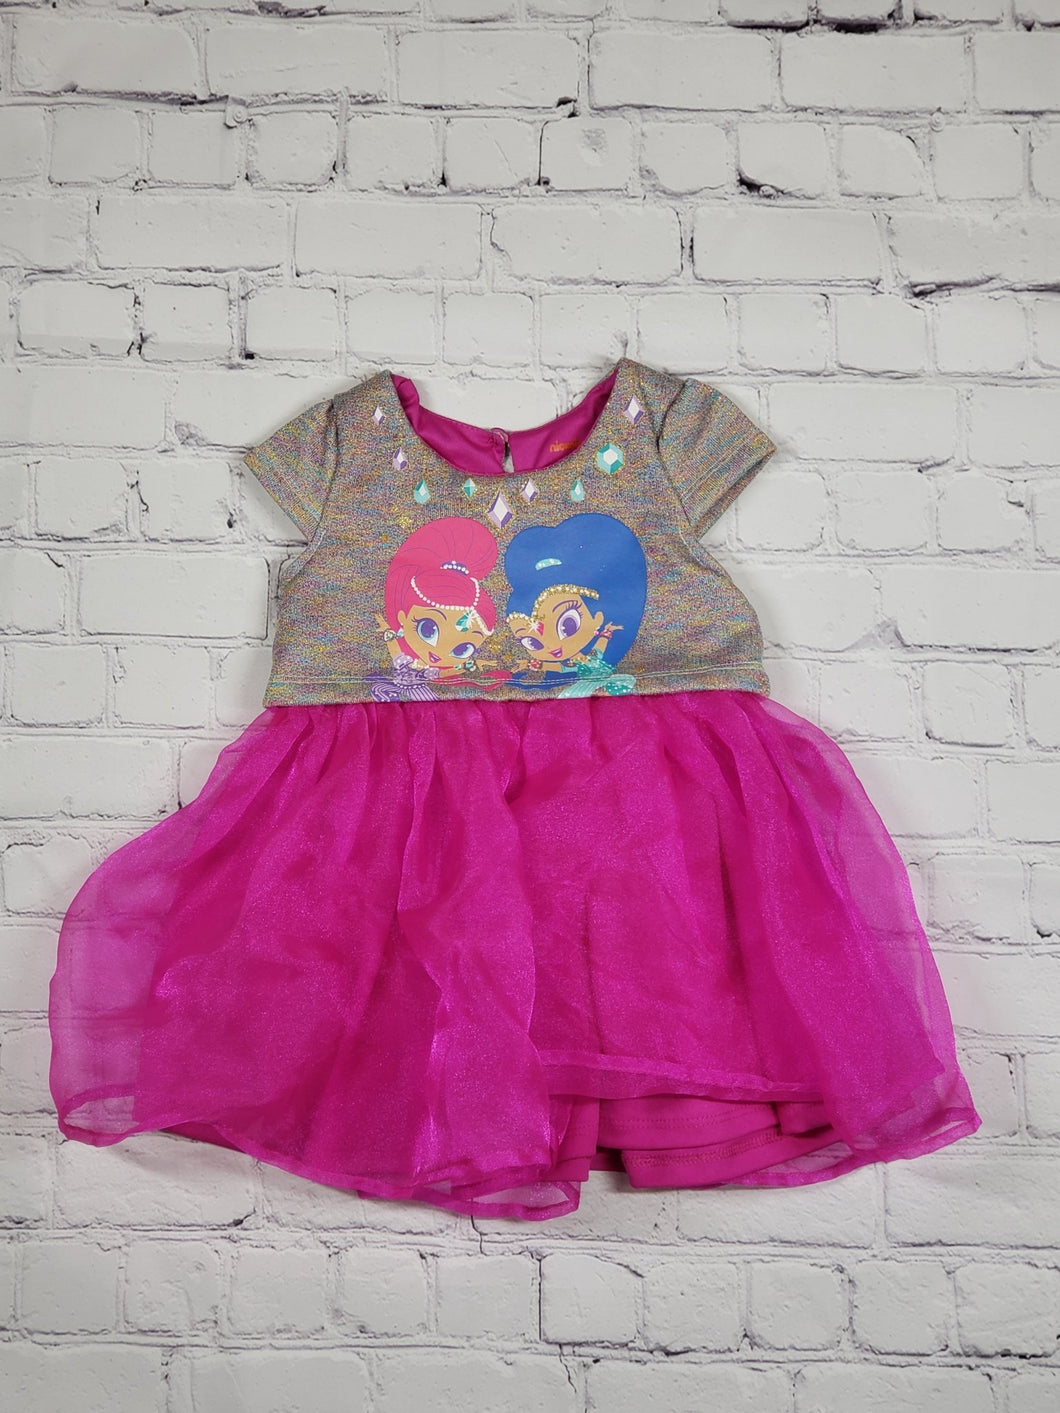 Shimmer & Shine Top (used) - LilChic BabyBug Boutique LLC